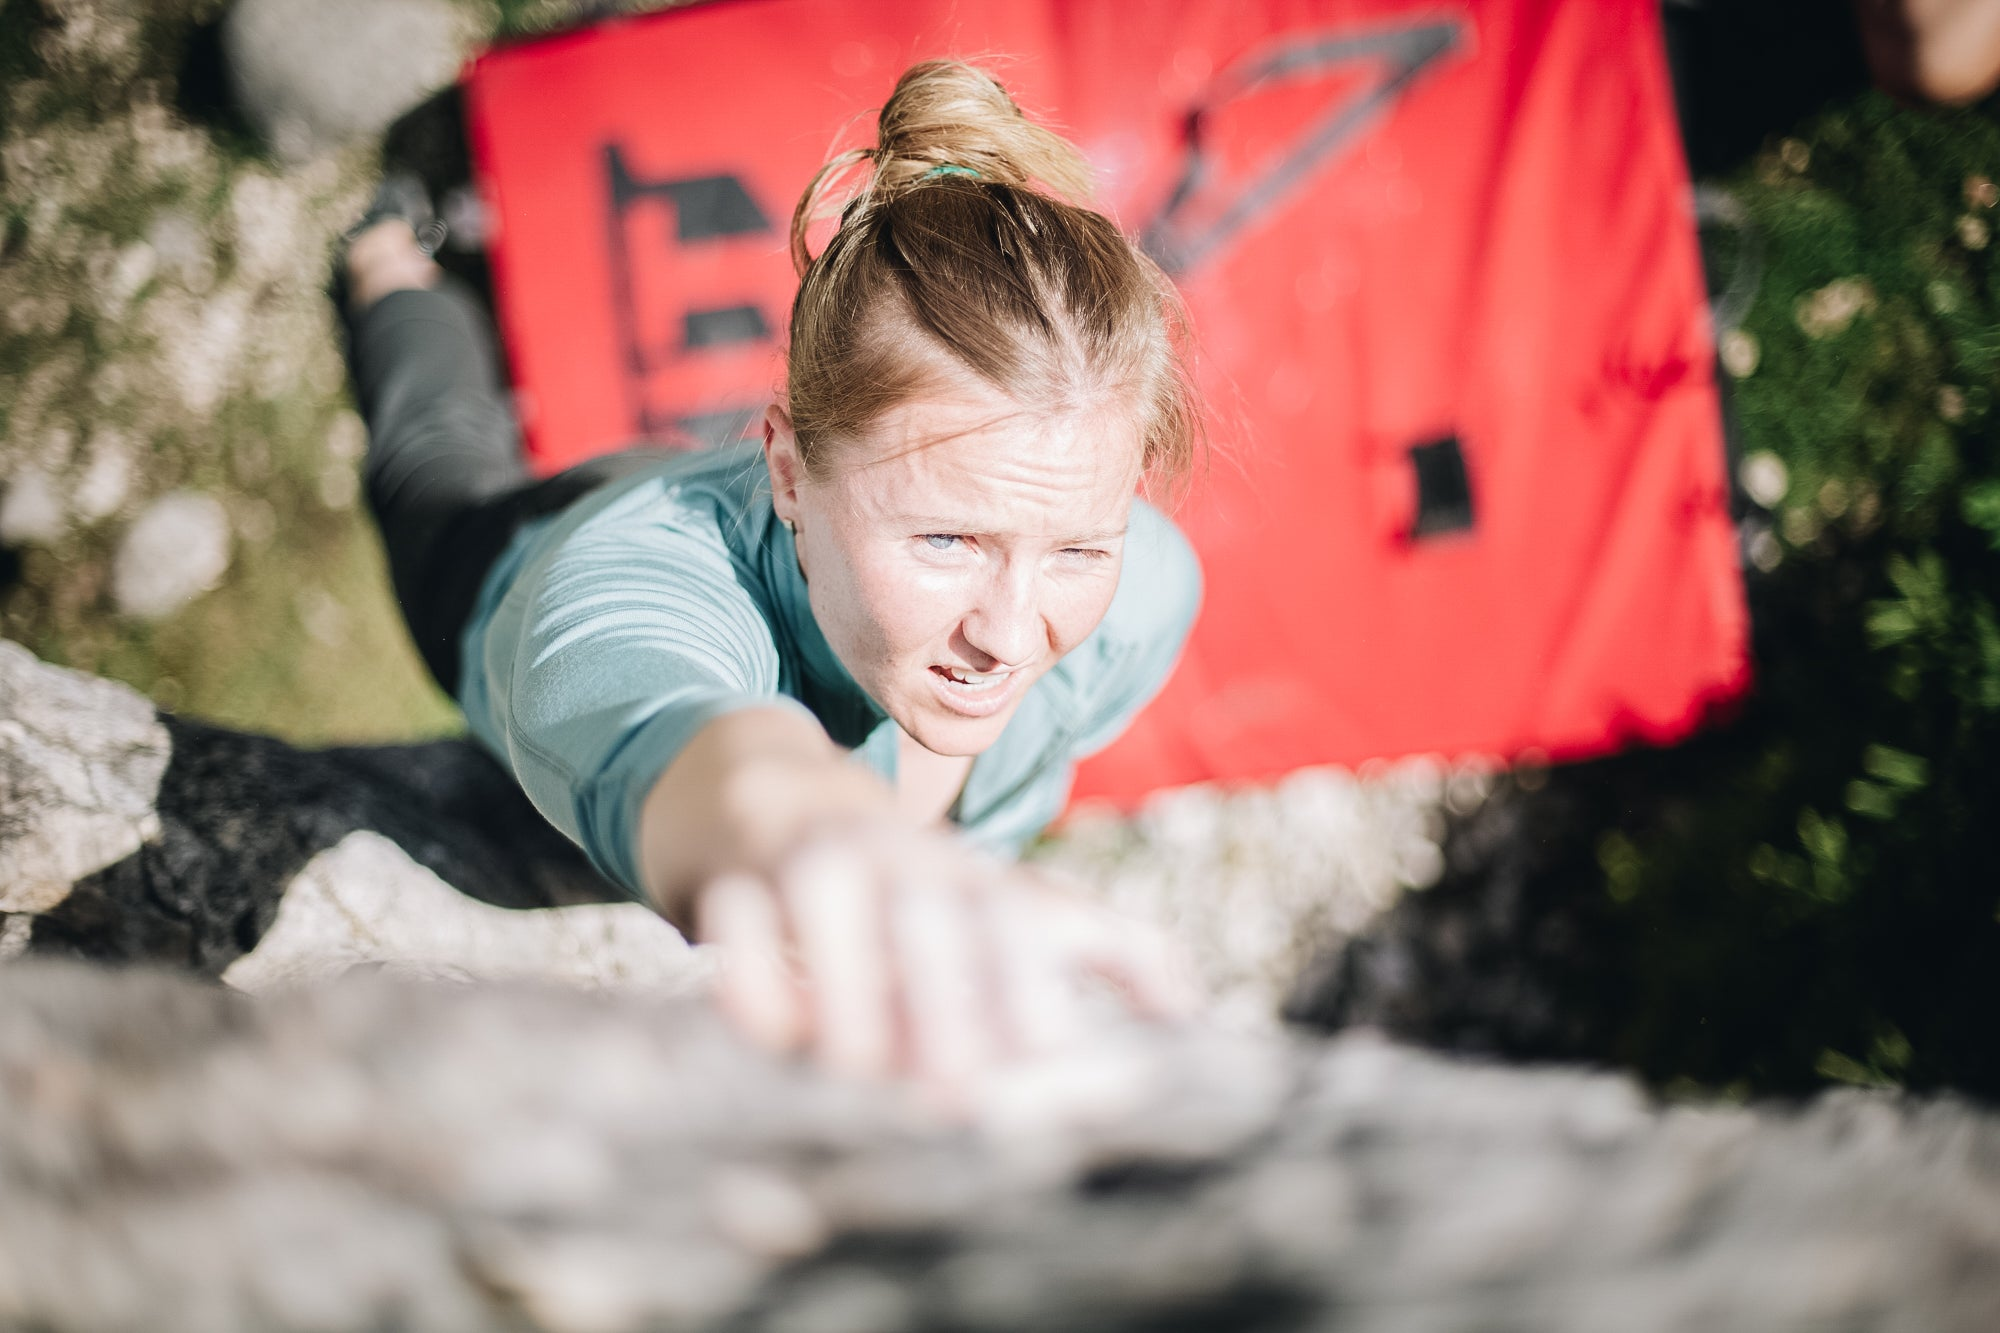 Woman bouldering in Slovenia in a merino wool long-sleeved t-shirt